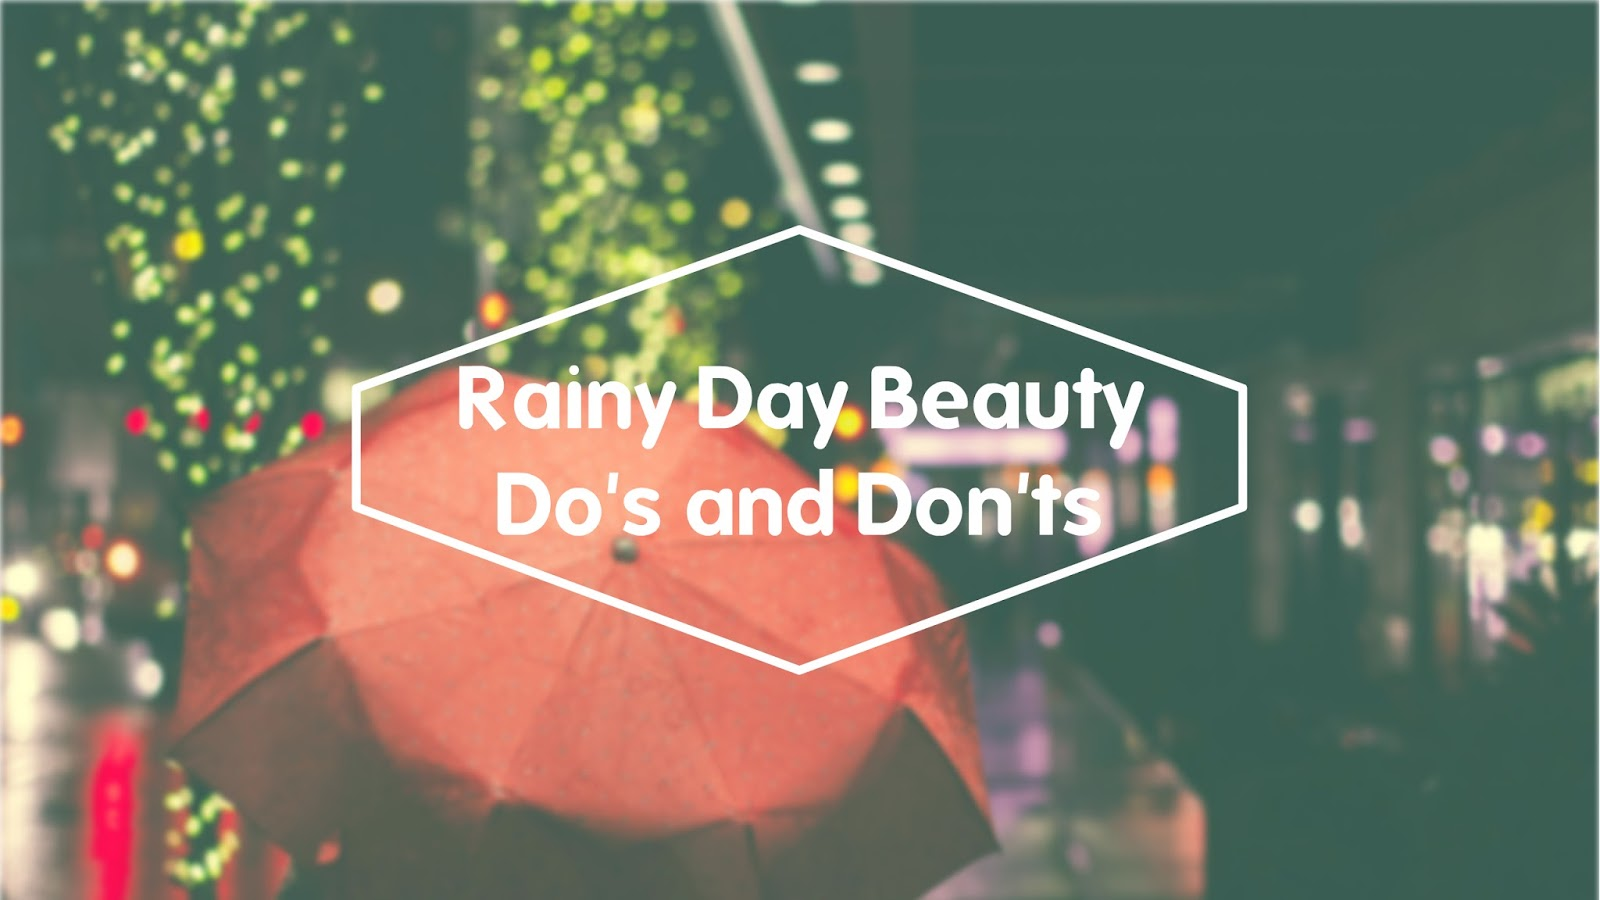 http://www.lightsandlatte.com/2016/06/rainy-day-beauty-dos-and-donts.html